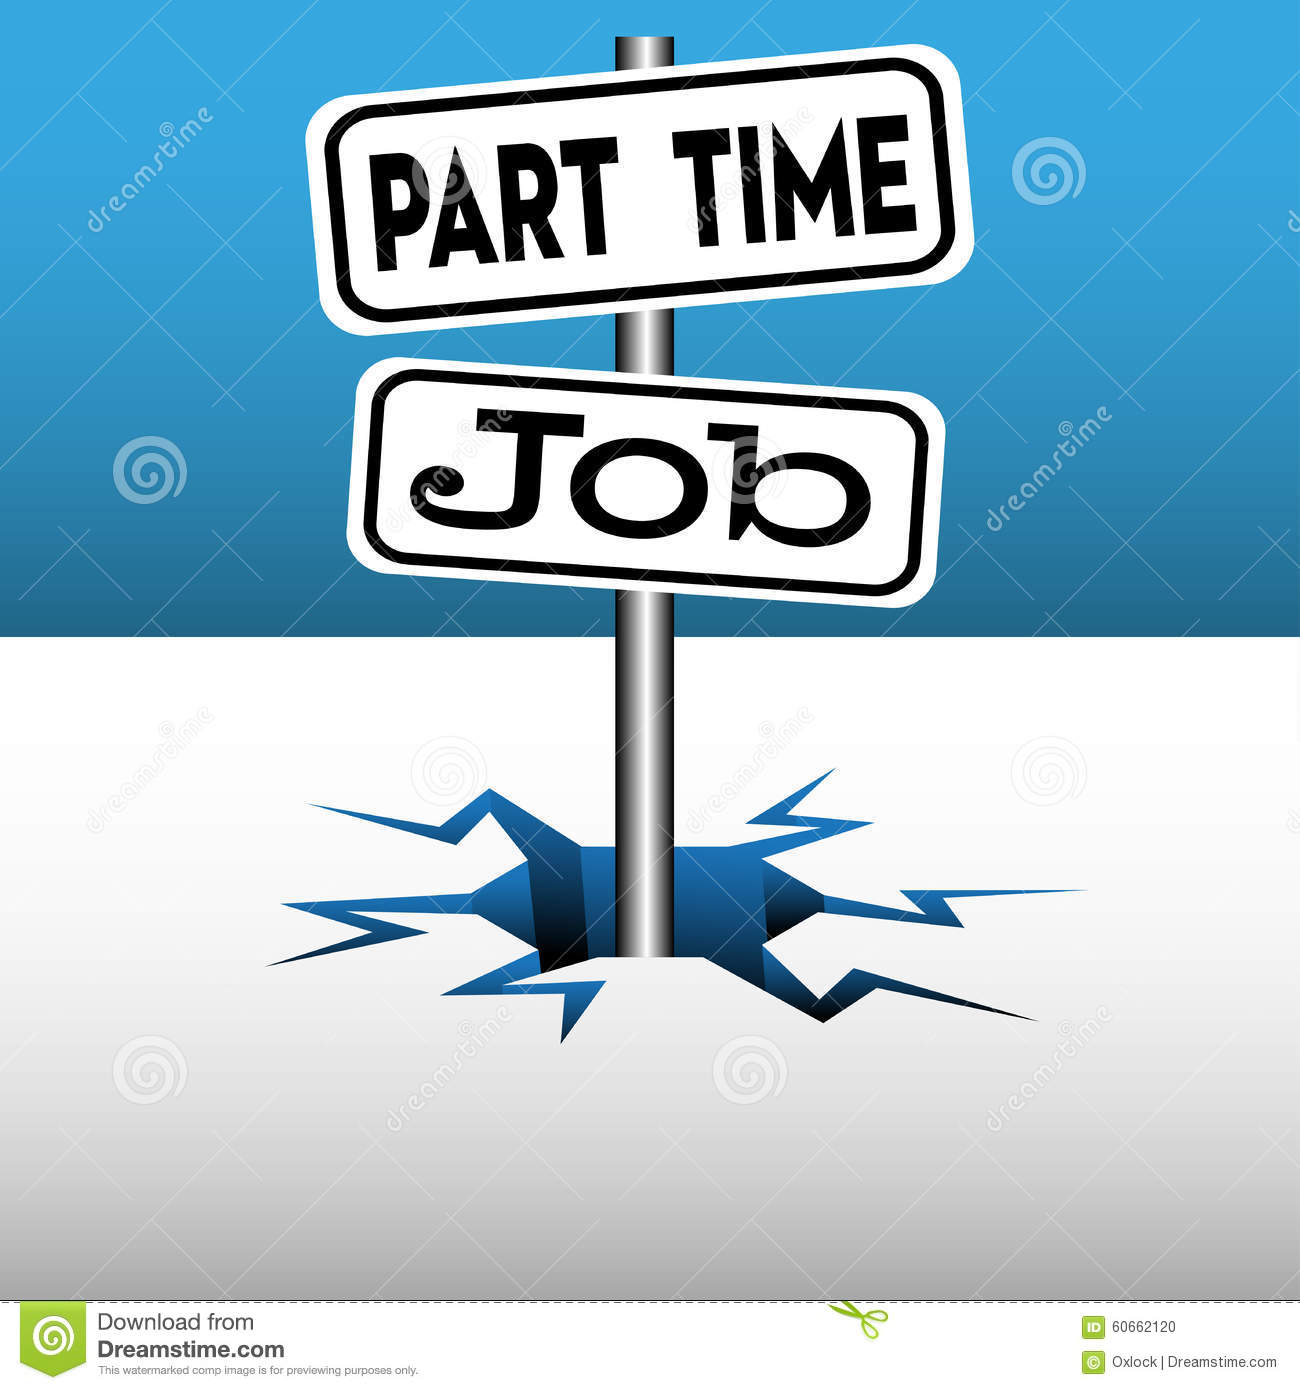 Part Time Job Stock Vector - Image: 60662120